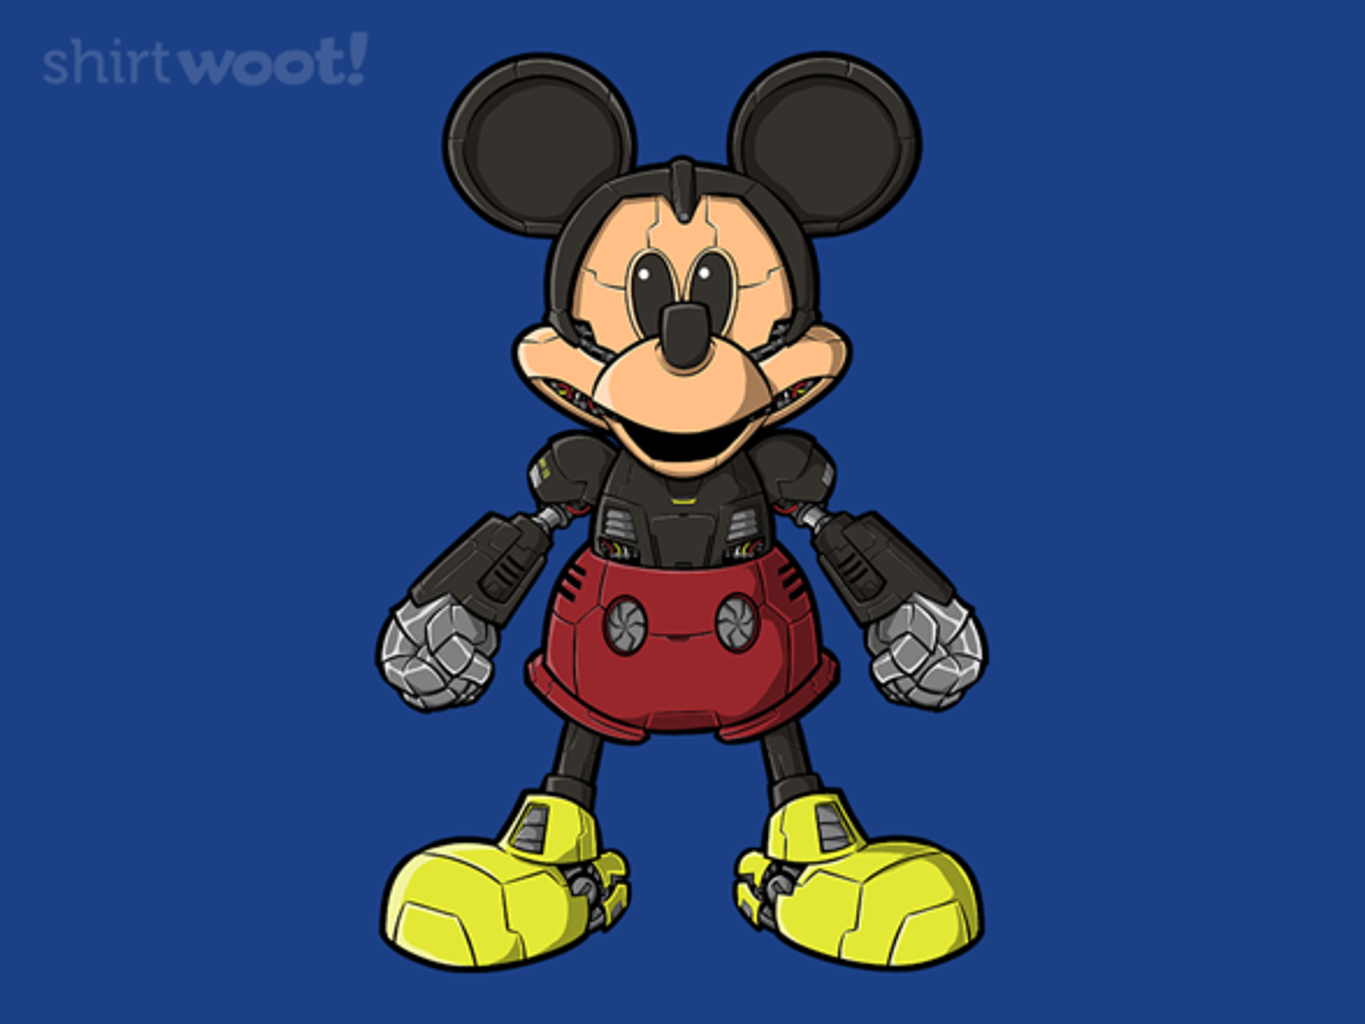 Woot!: MEKA MOUSE